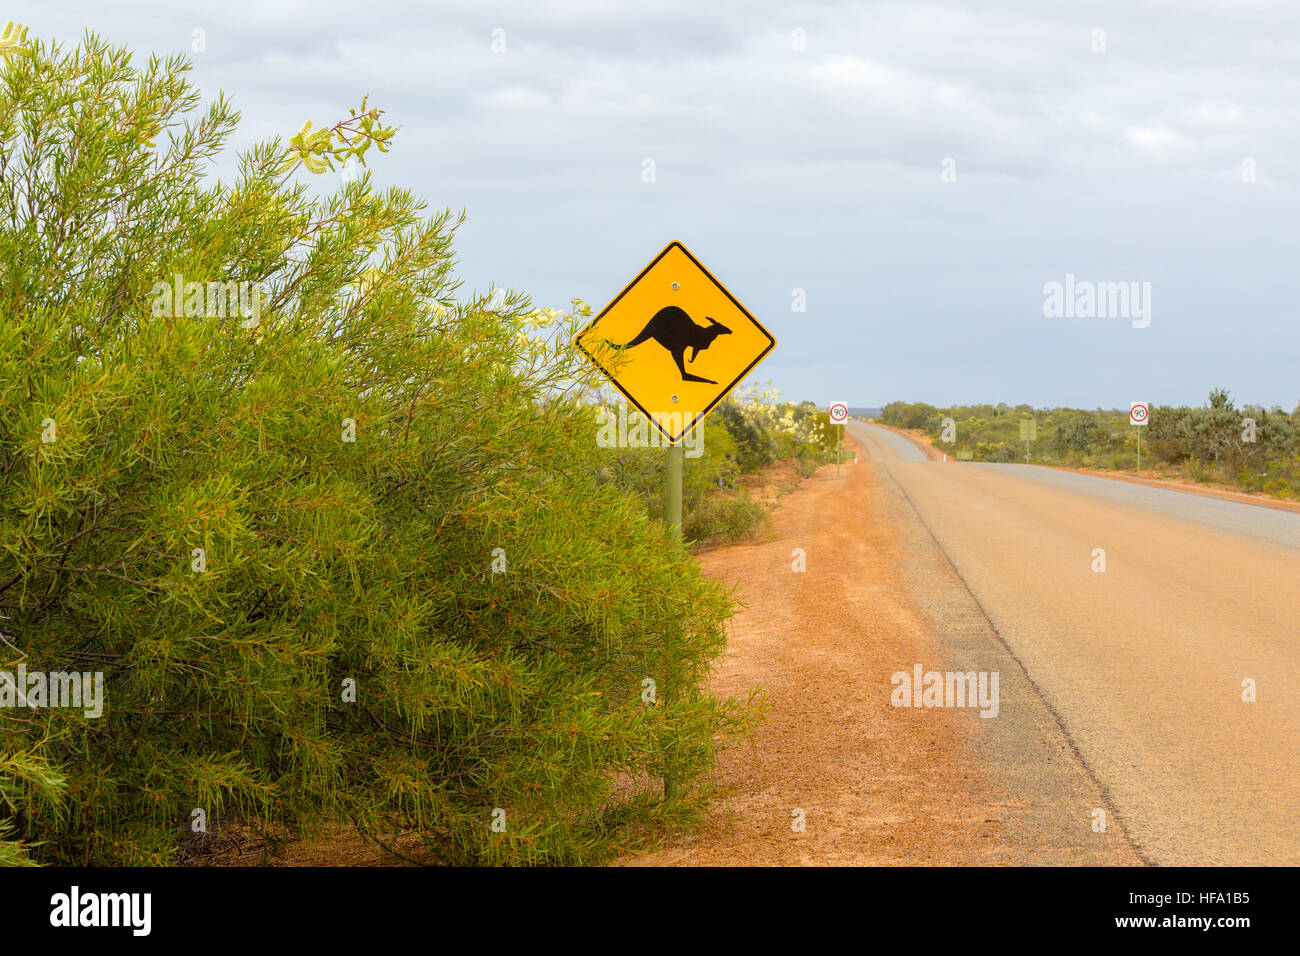 Kangaroo sign, unpaved road, Western Australia Stock Photo